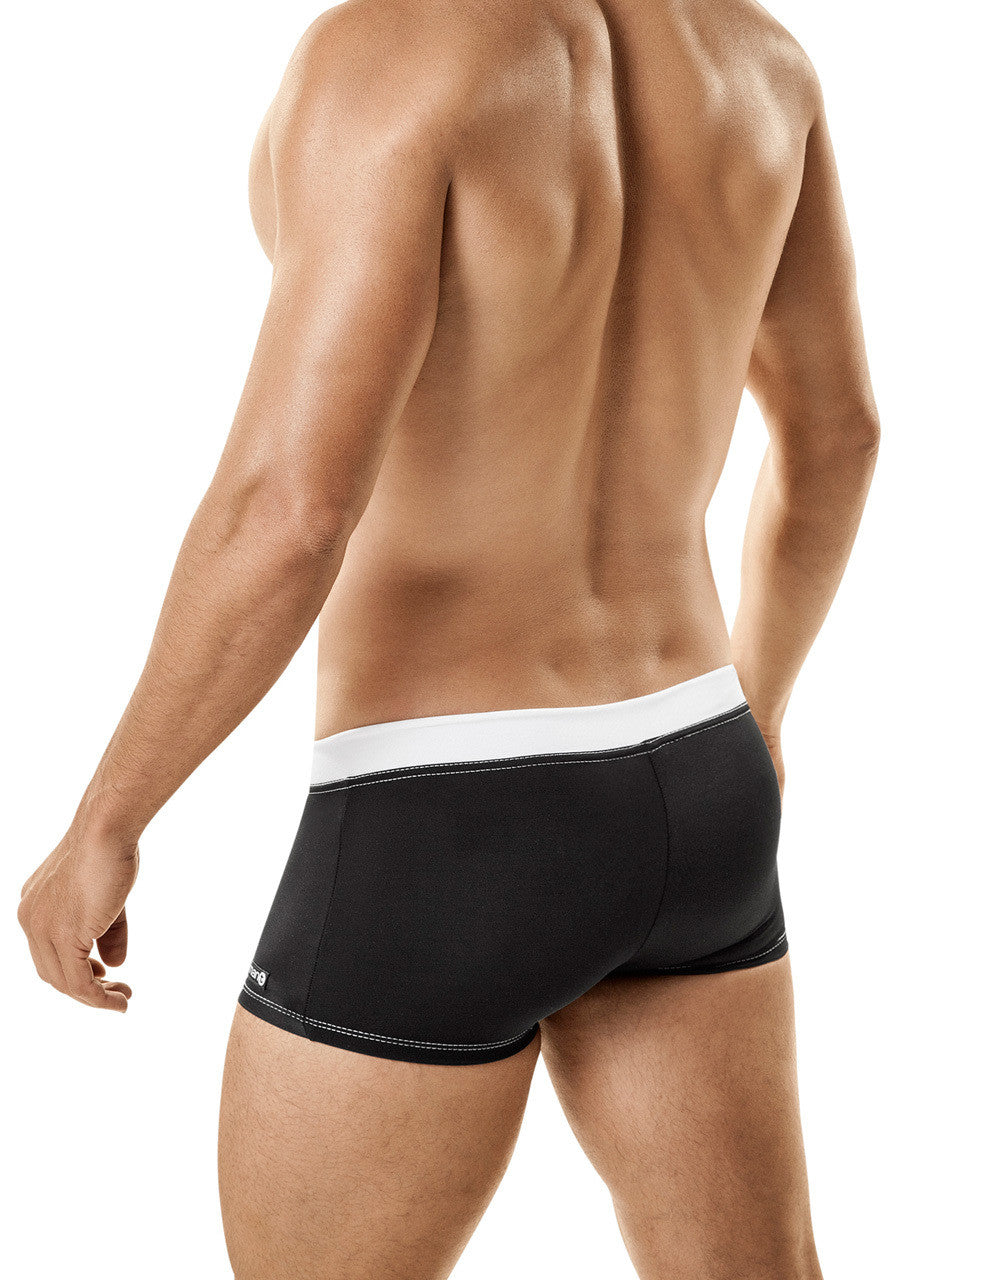 WildmanT Banned Swim Square Cut w/Ball Lifter® Cock-Ring Black - Big Penis Underwear, WildmanT - WildmanT